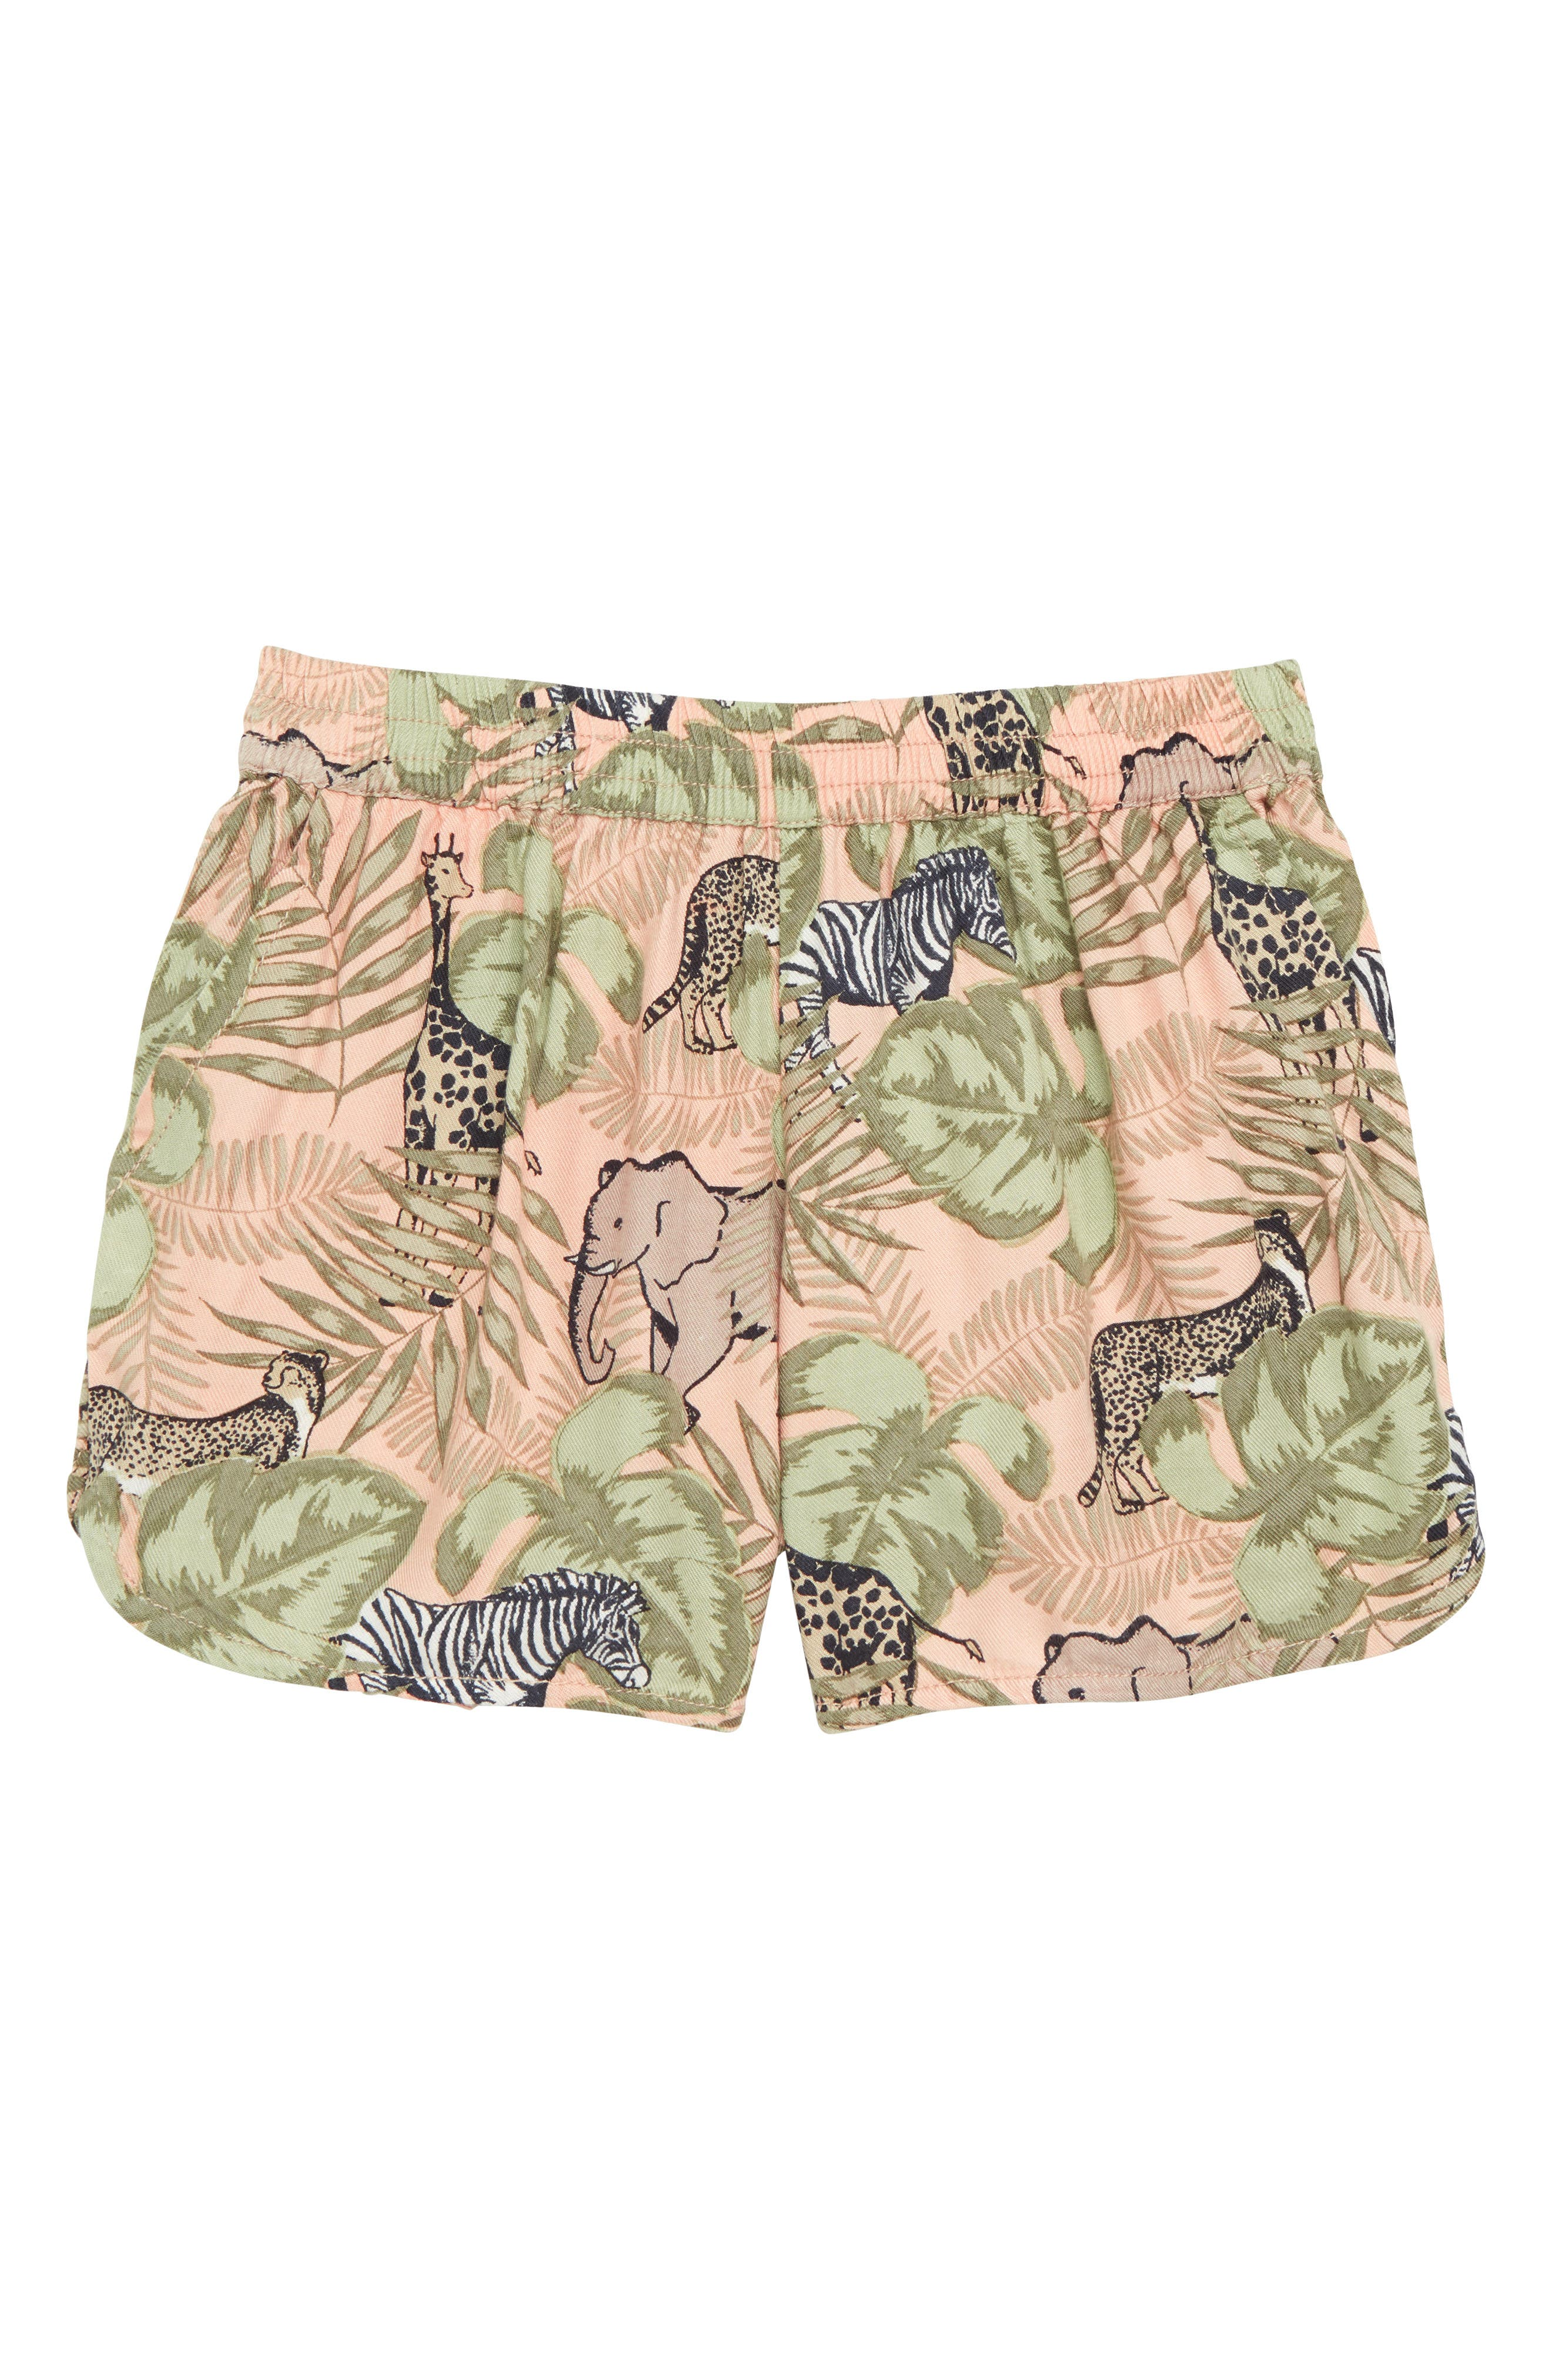 Savannah Print Shorts,                             Main thumbnail 1, color,                             Peach